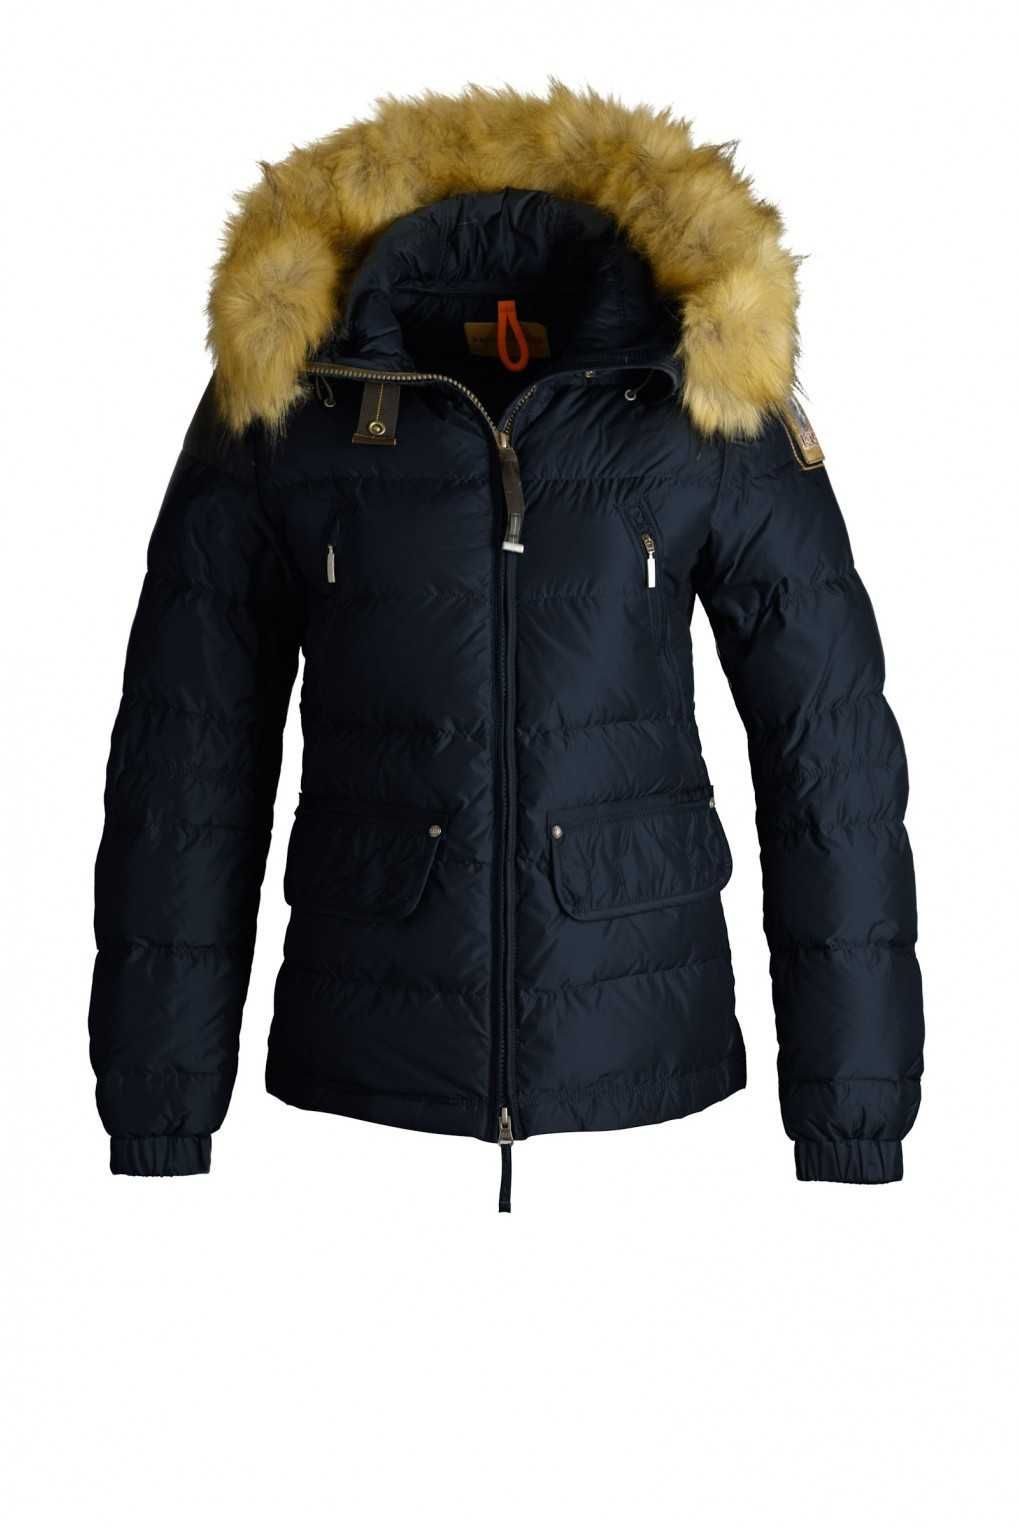 parajumpers replica jacket